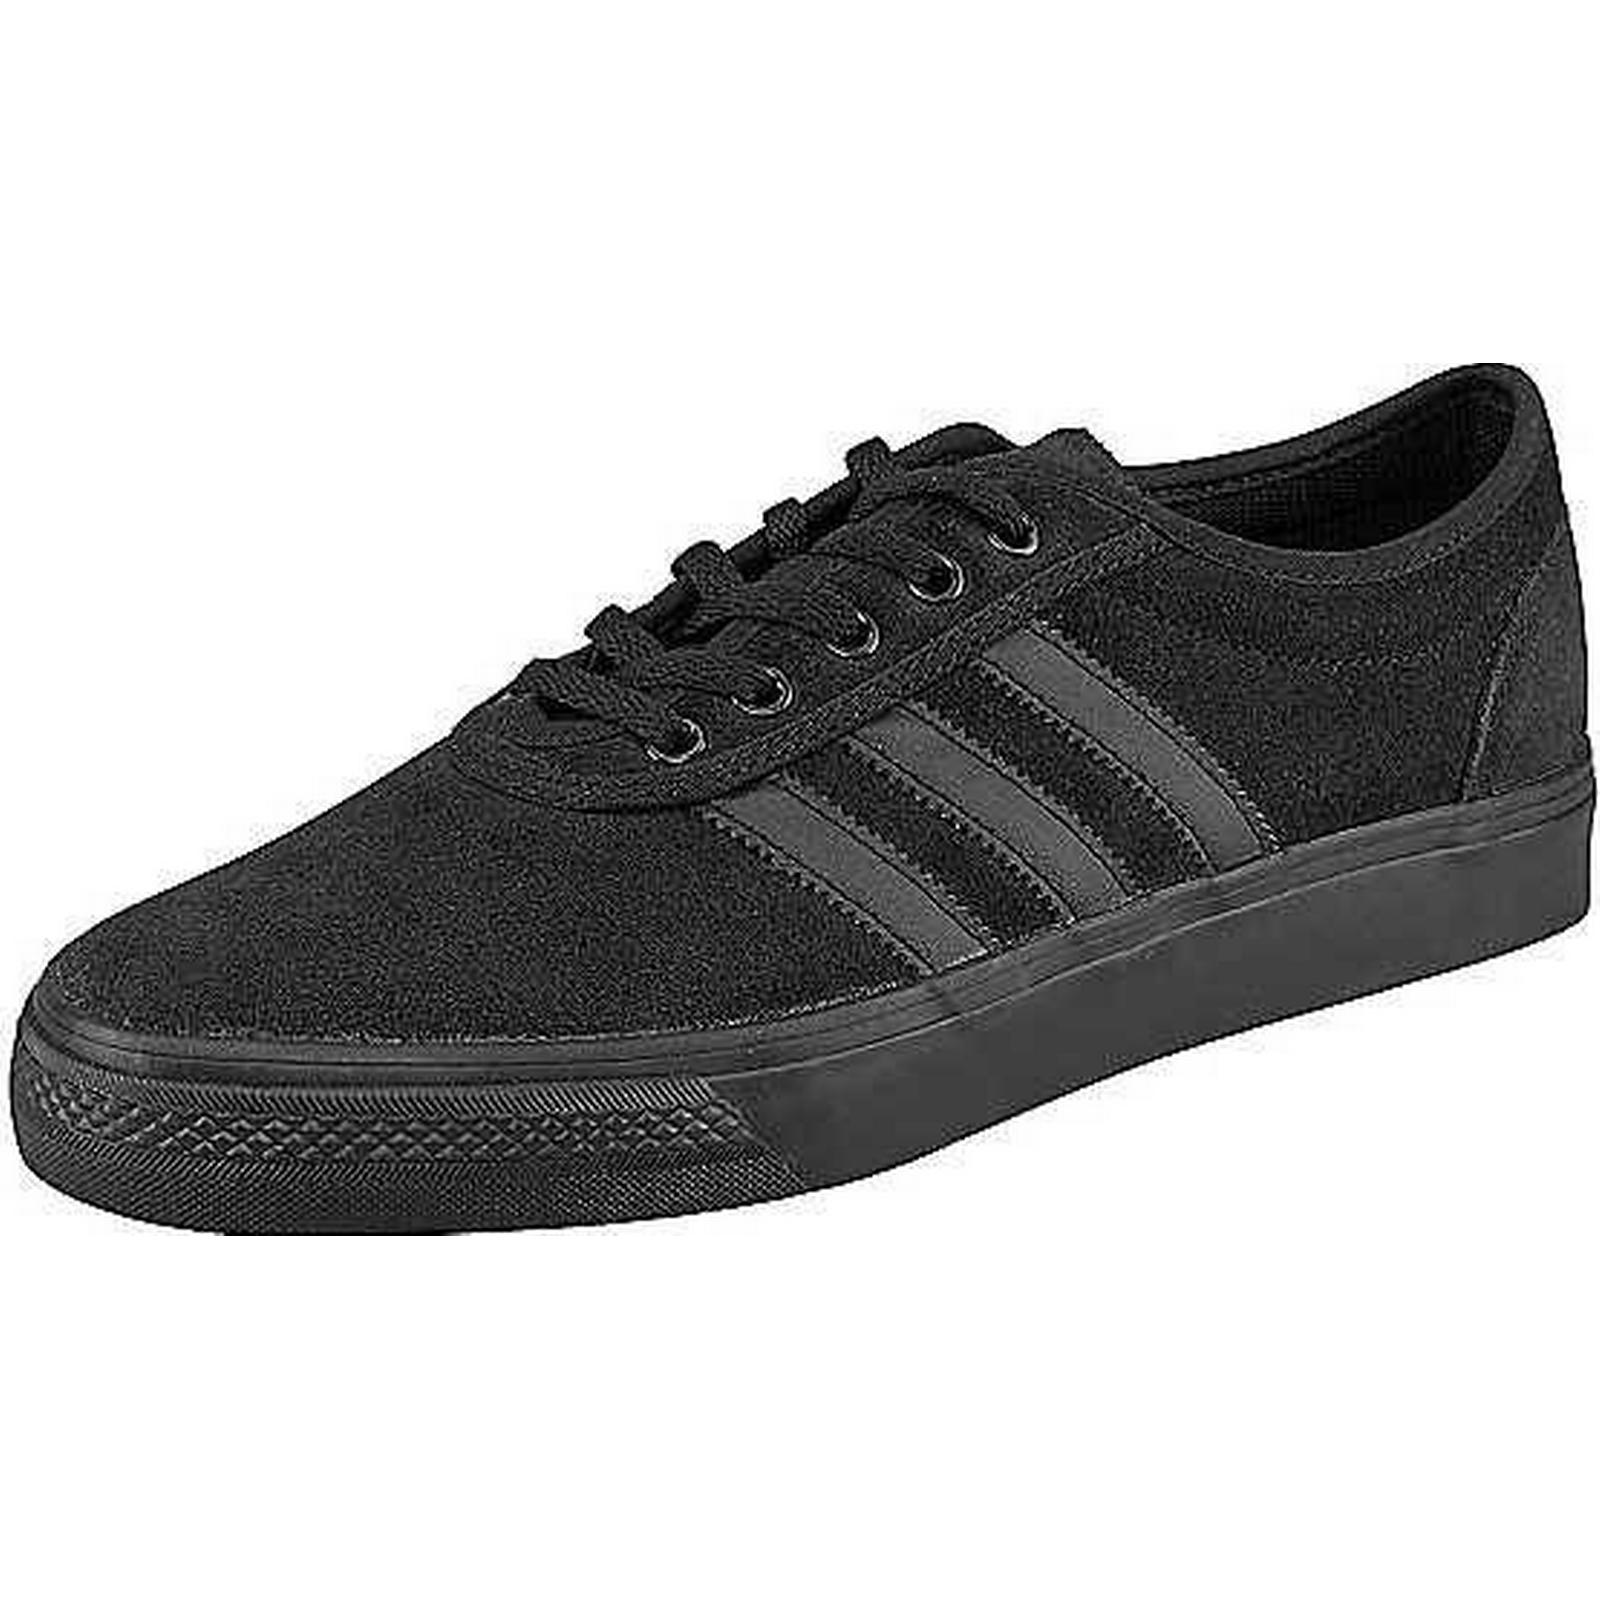 Adidas Originals Adi Ease Trainers cost by adidas Originals<Man's/Woman's<moderate cost Trainers 4b56d6